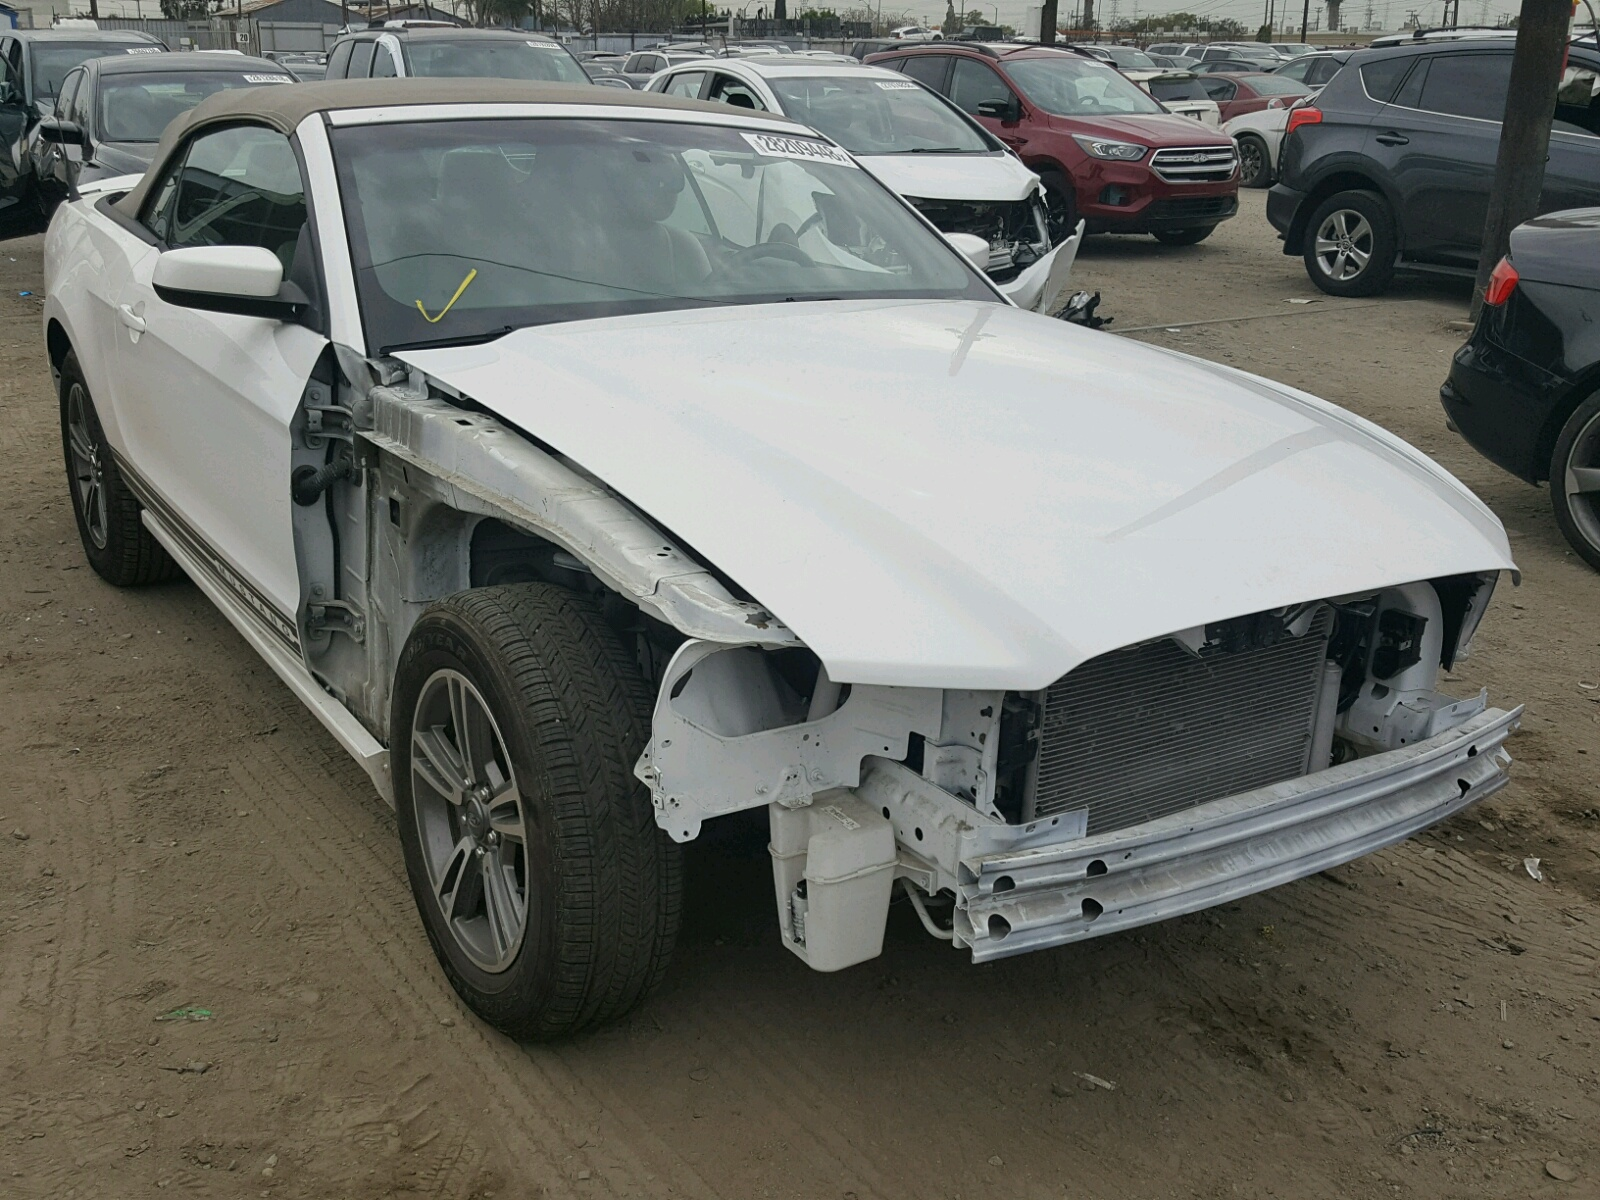 1ZVBP8EM1D5202706 | 2013 WHITE FORD MUSTANG on Sale in CA - LOS ...